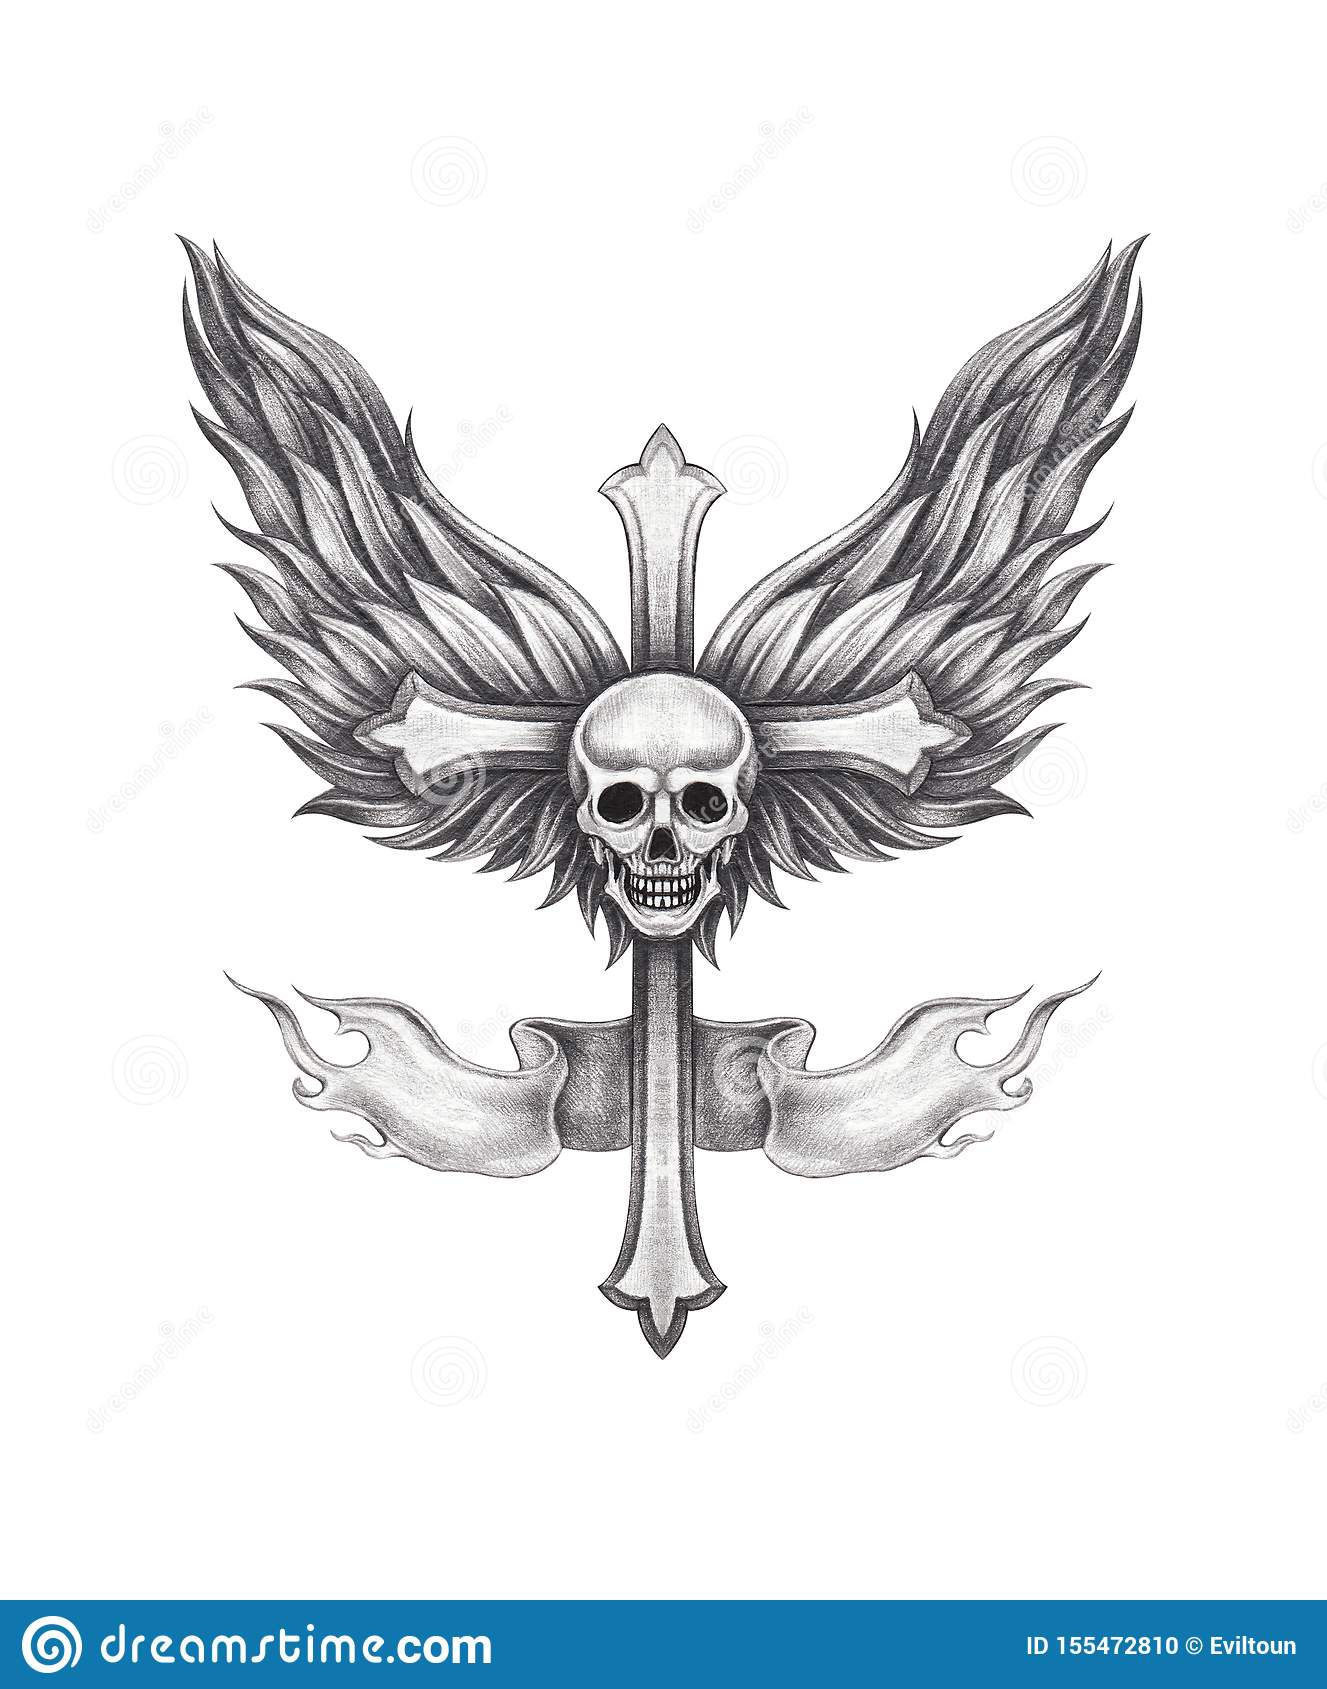 Cross With Angel Wings Drawing : cross, angel, wings, drawing, Angel, Wings, Cross, Stock, Illustrations, 1,275, Illustrations,, Vectors, Clipart, Dreamstime